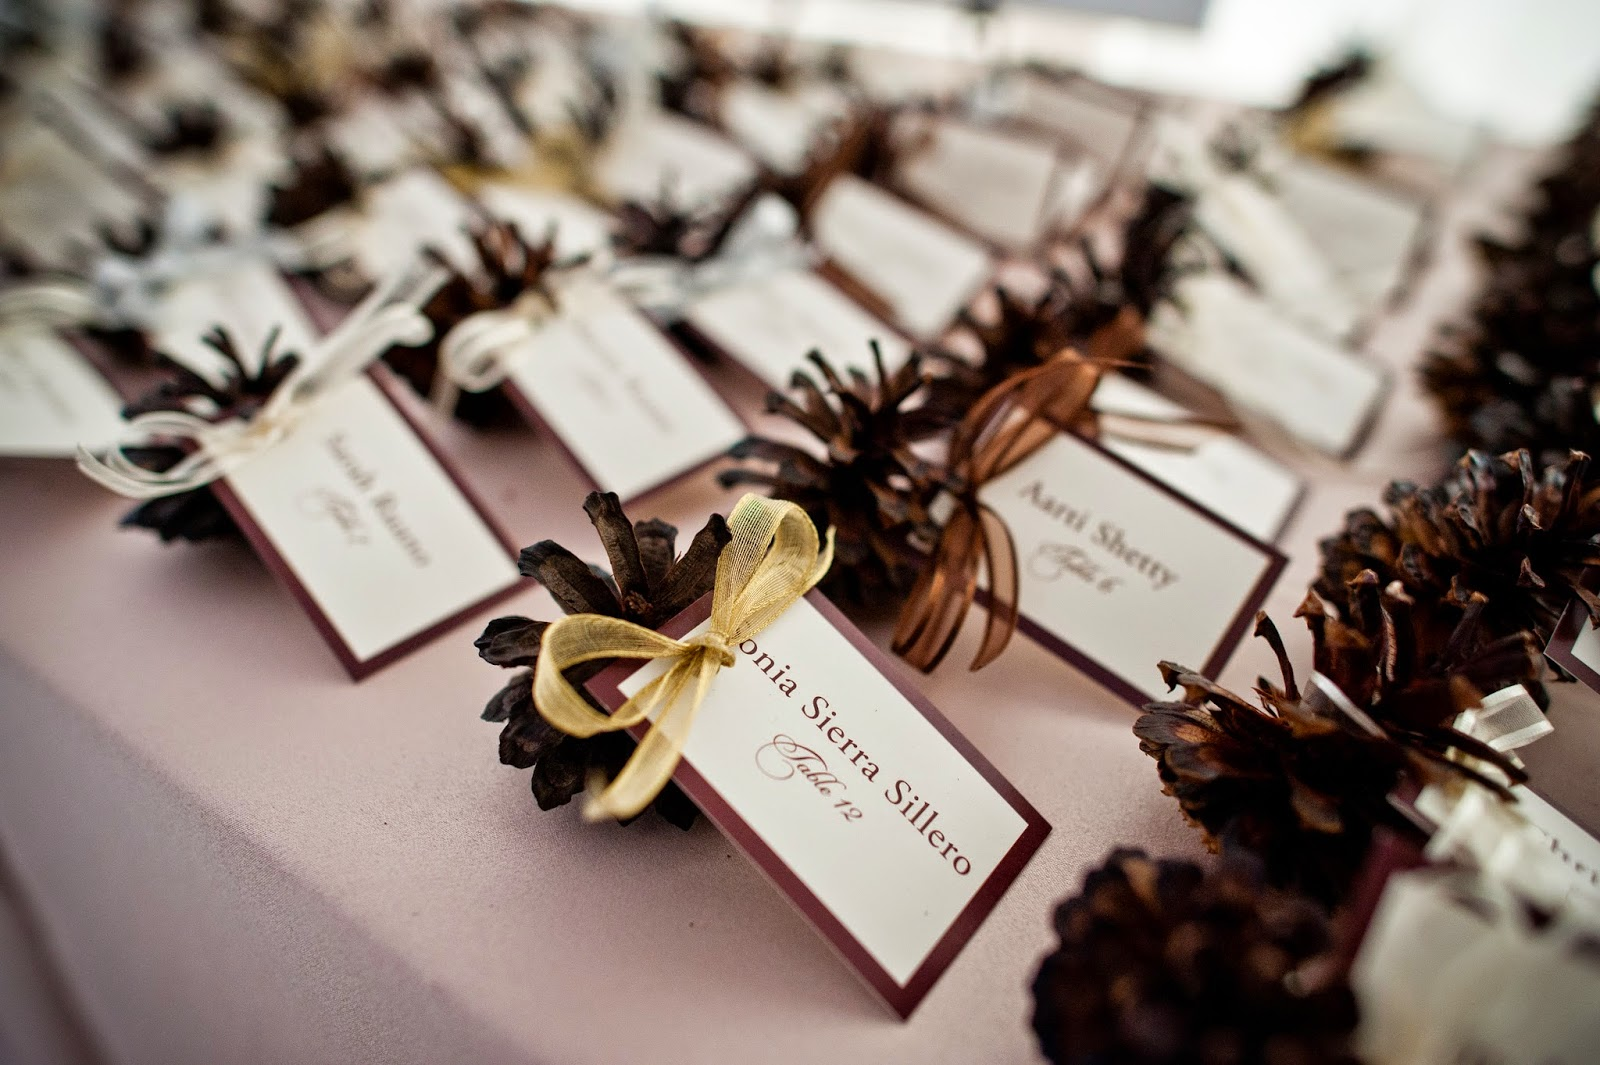 Rustic mounatin pine cone wedding place cards // Kacie Jean Photography // Take the Cake Event Planning